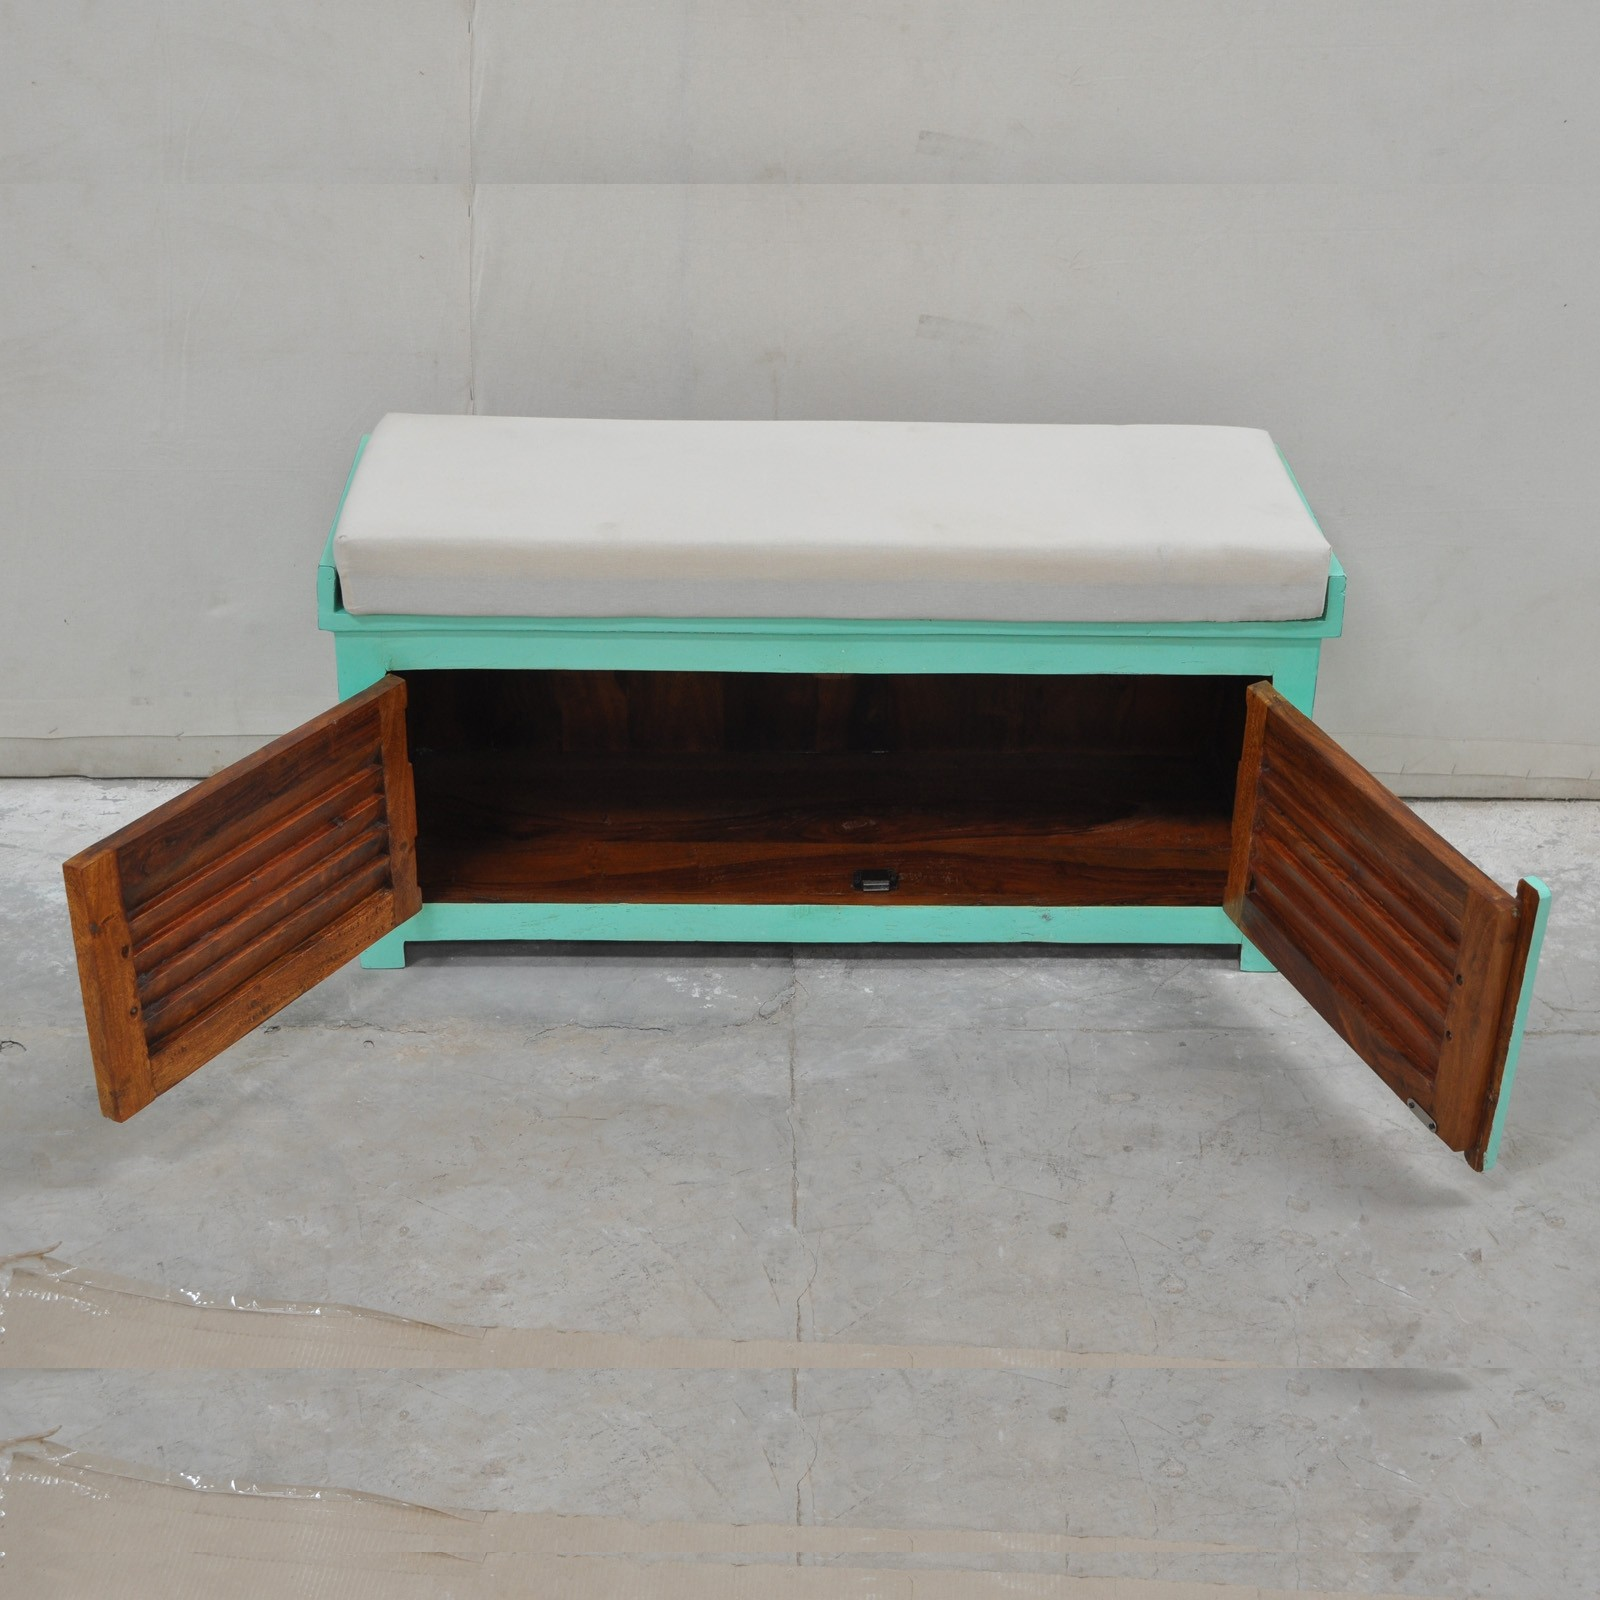 Solid Wood Bench Sofa Couch Storage Chest Furniture: Shutter Solid Wood Storage Chest With Seat